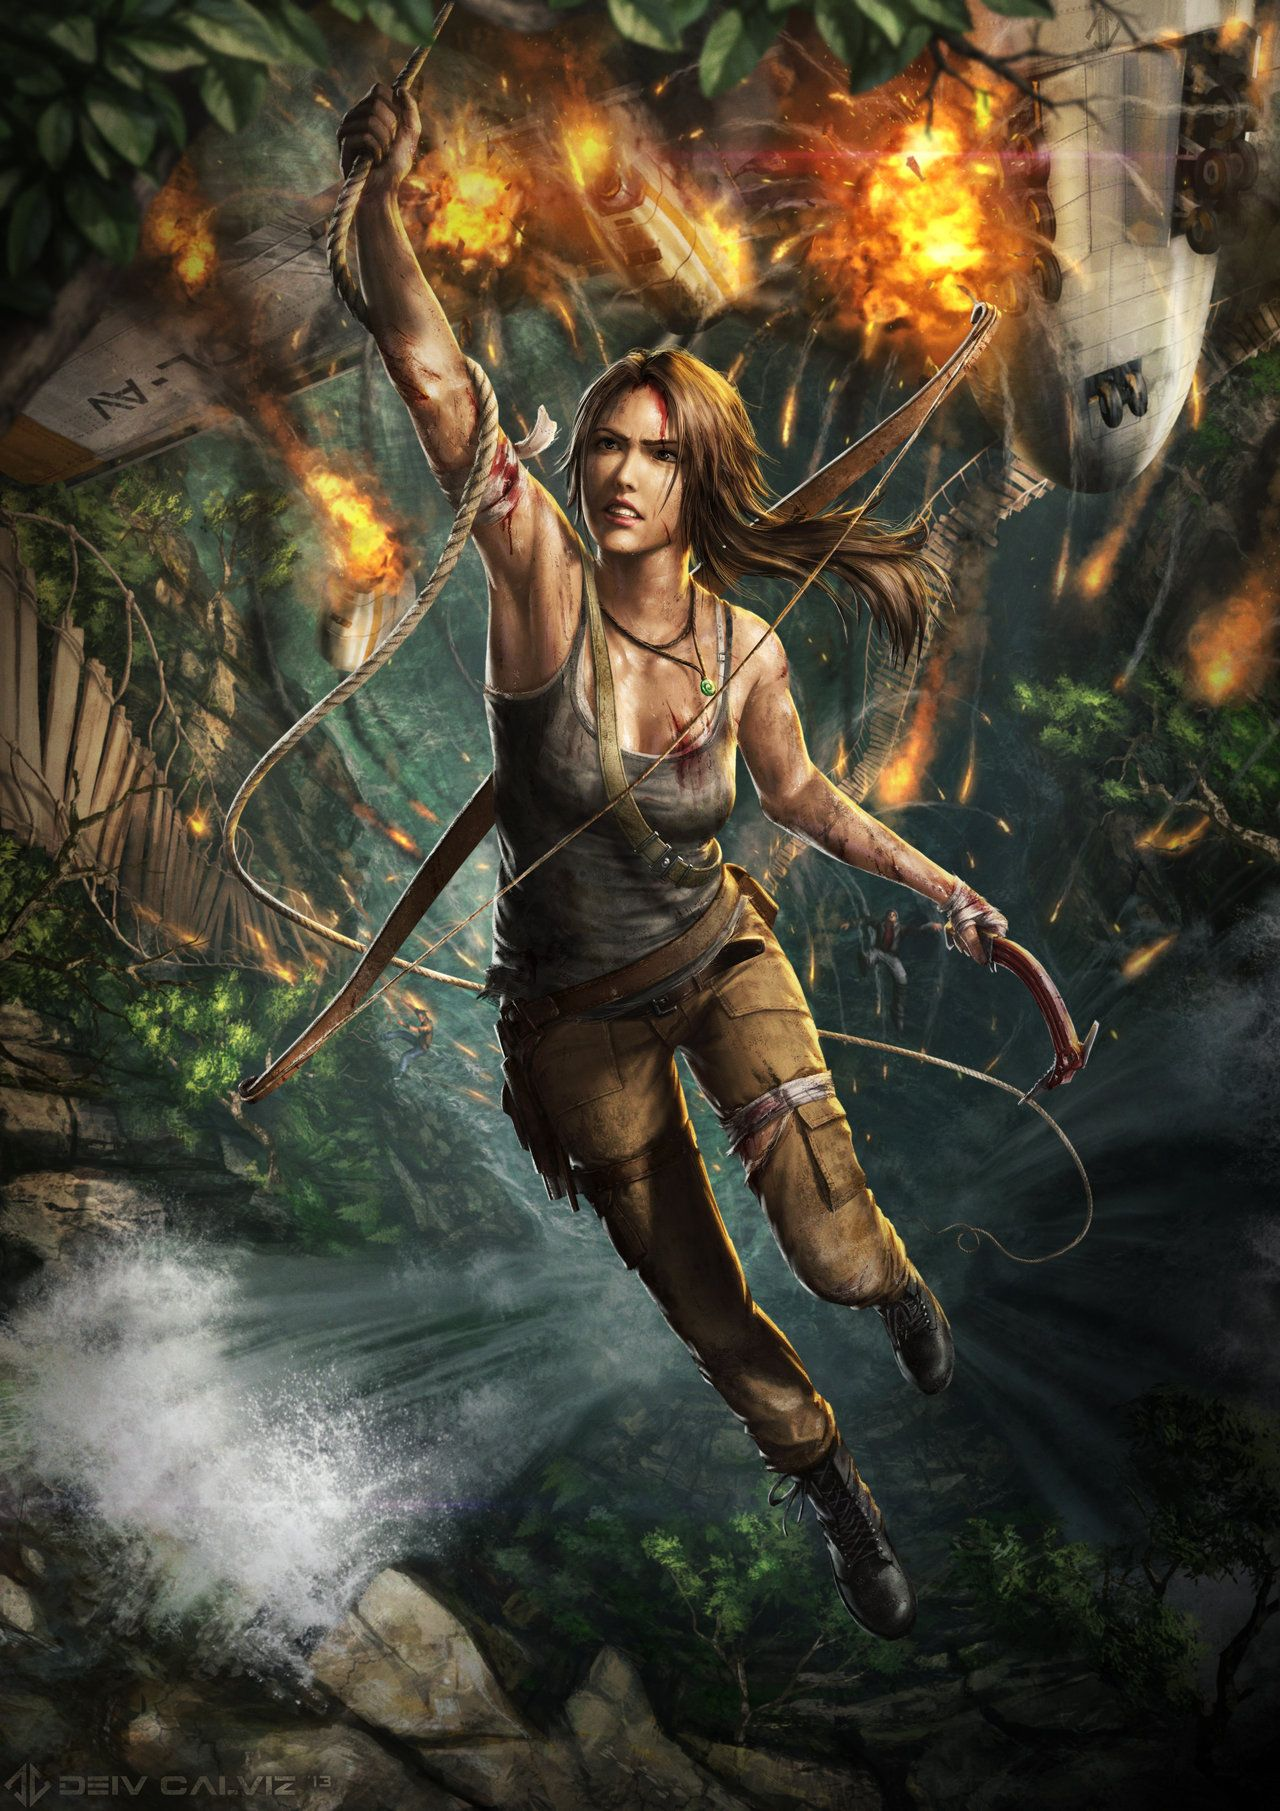 Tomb Raider Reborn By Deivcalviz On Deviantart Tomb Raider Art